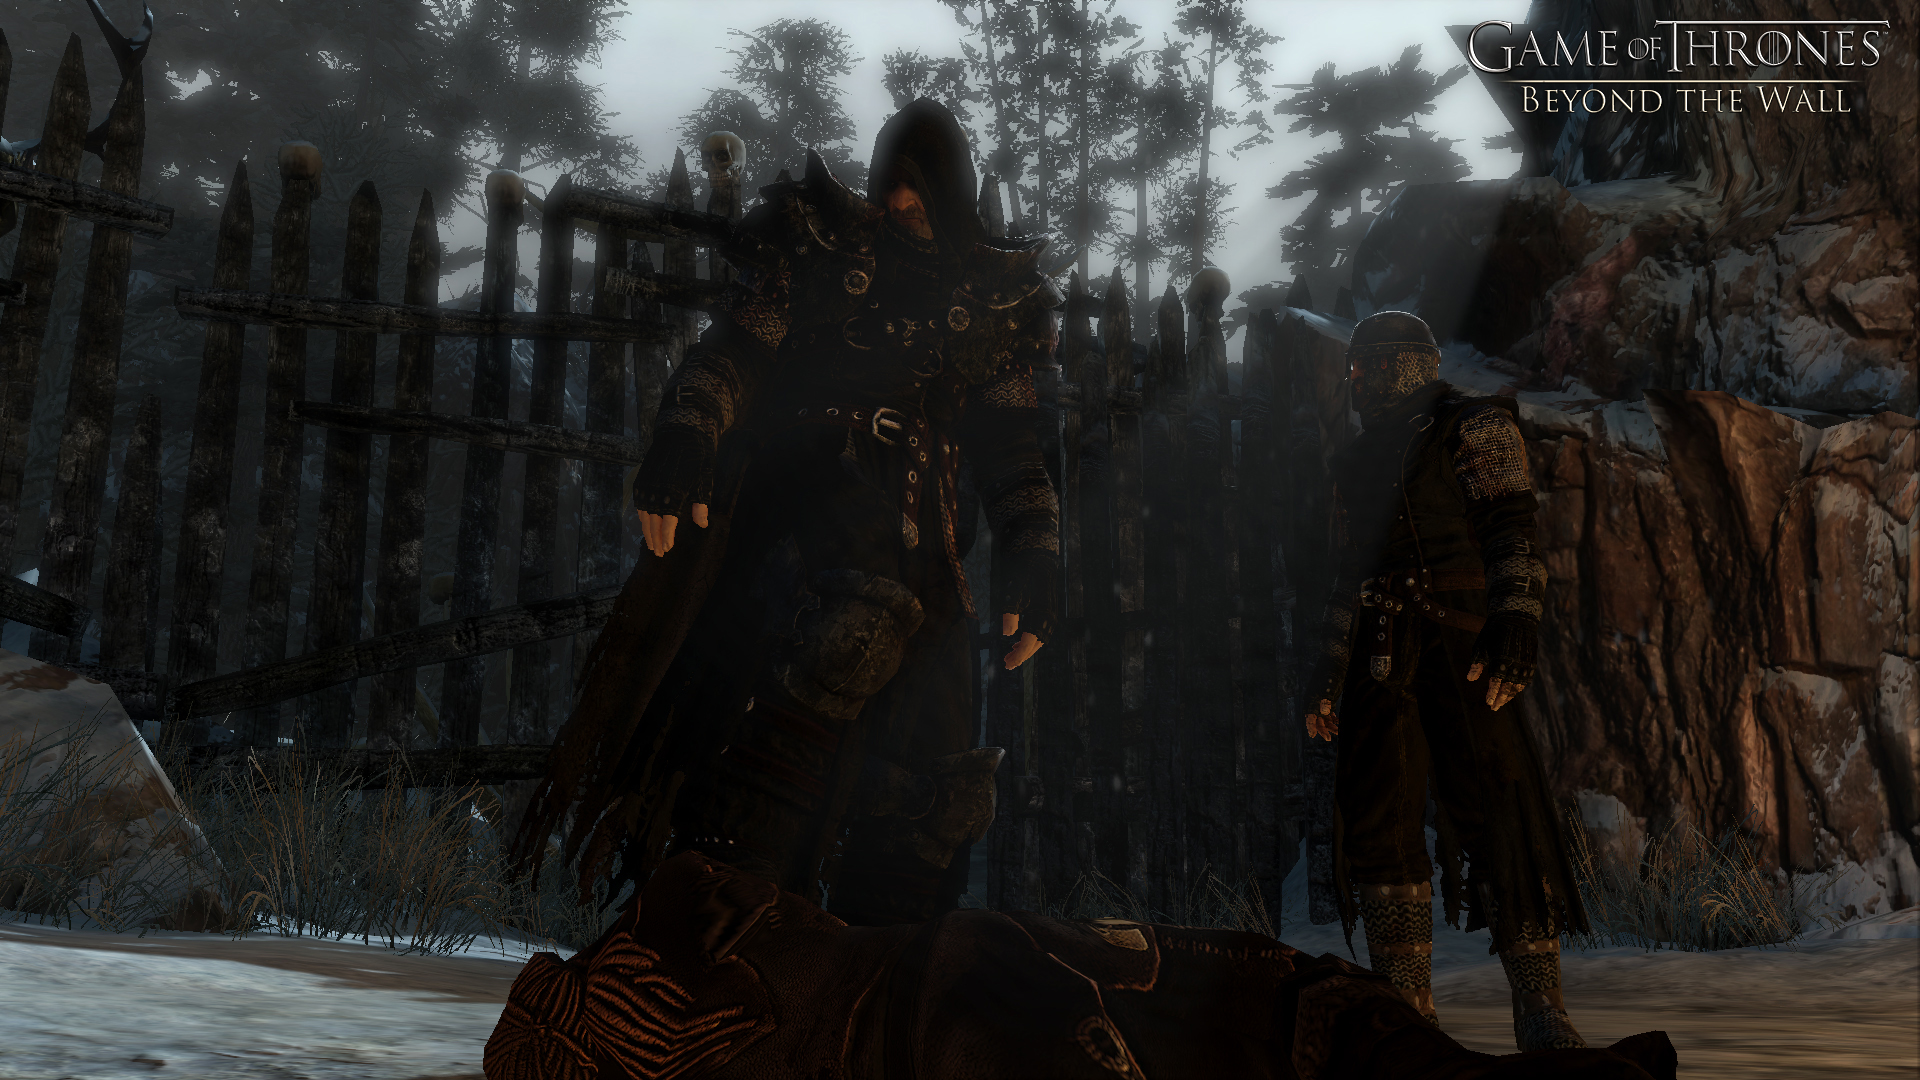 Game Of Thrones DLC Travels Beyond The Wall #24532